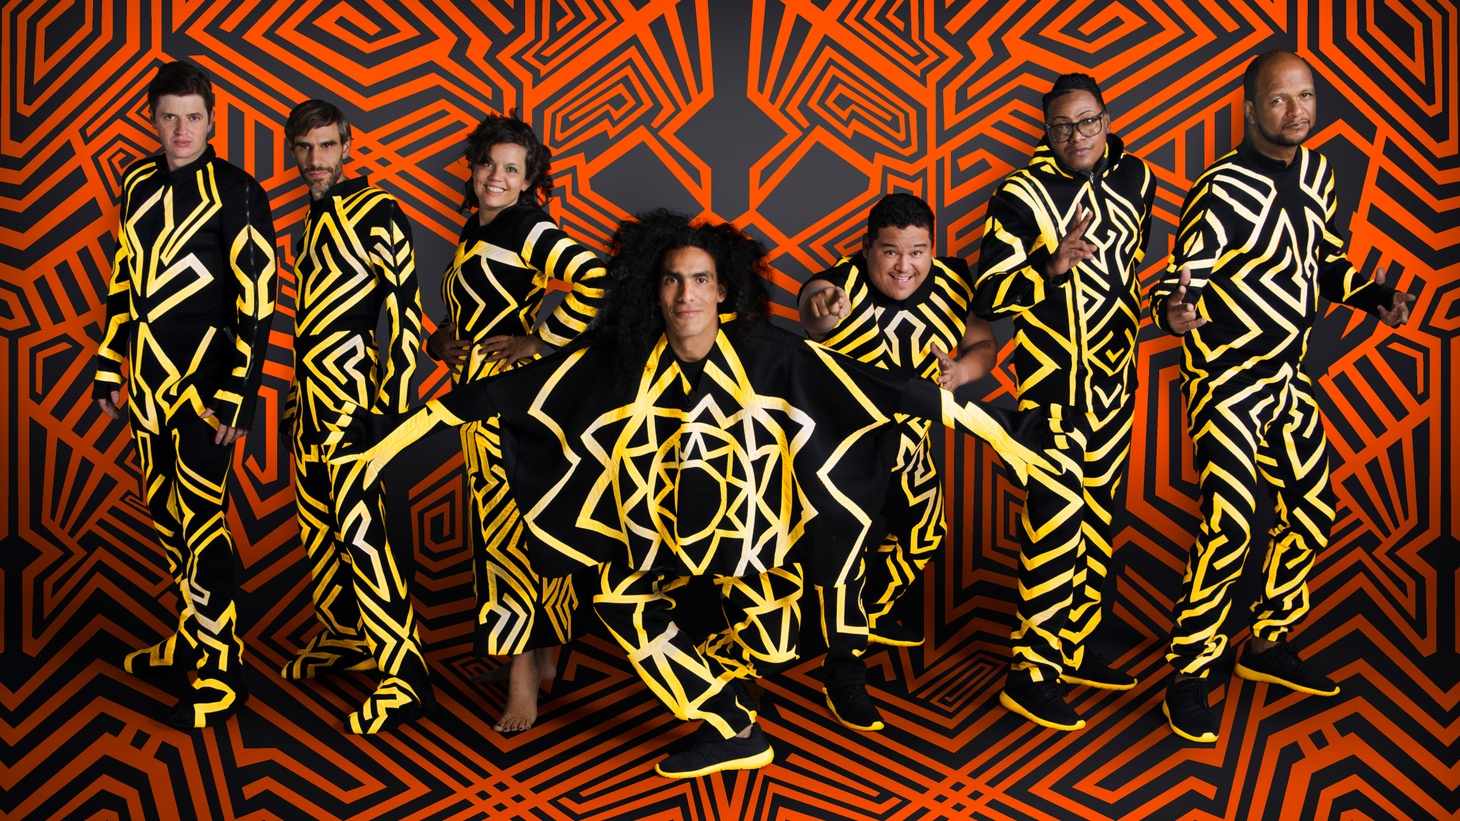 With its deep mix of Afro-Caribbean rhythms and sexy funk, Systema Solar is a band to watch in 2017.